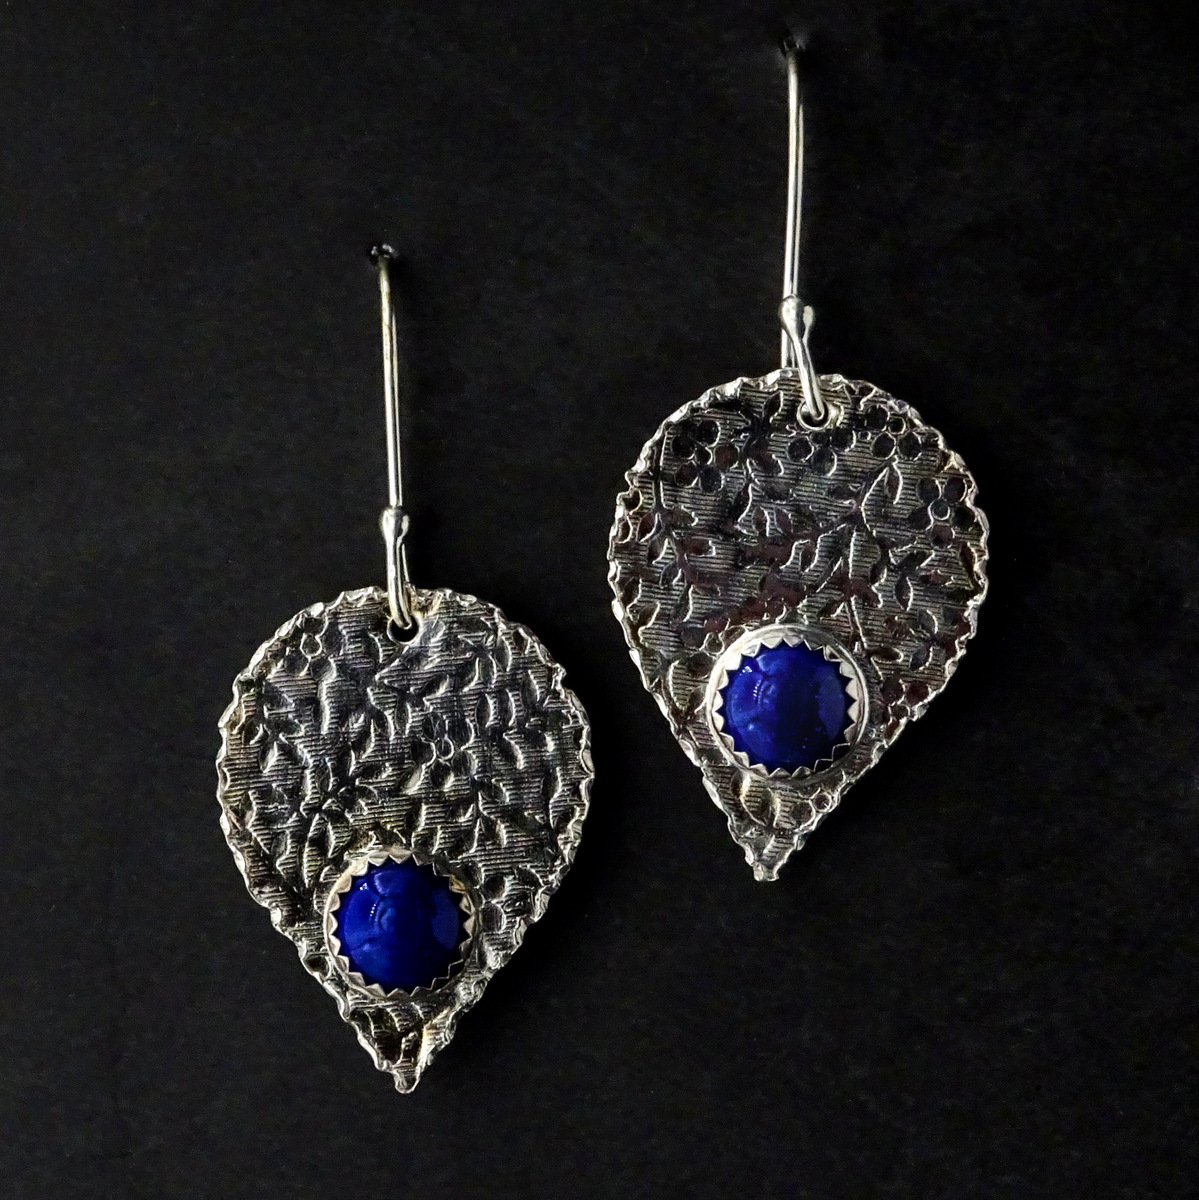 INVERTED TEARDROPS WITH BLUE STONE EARRINGS,  Silver Ear Wires,  1.25 x .75 inches - 2 inches drop length